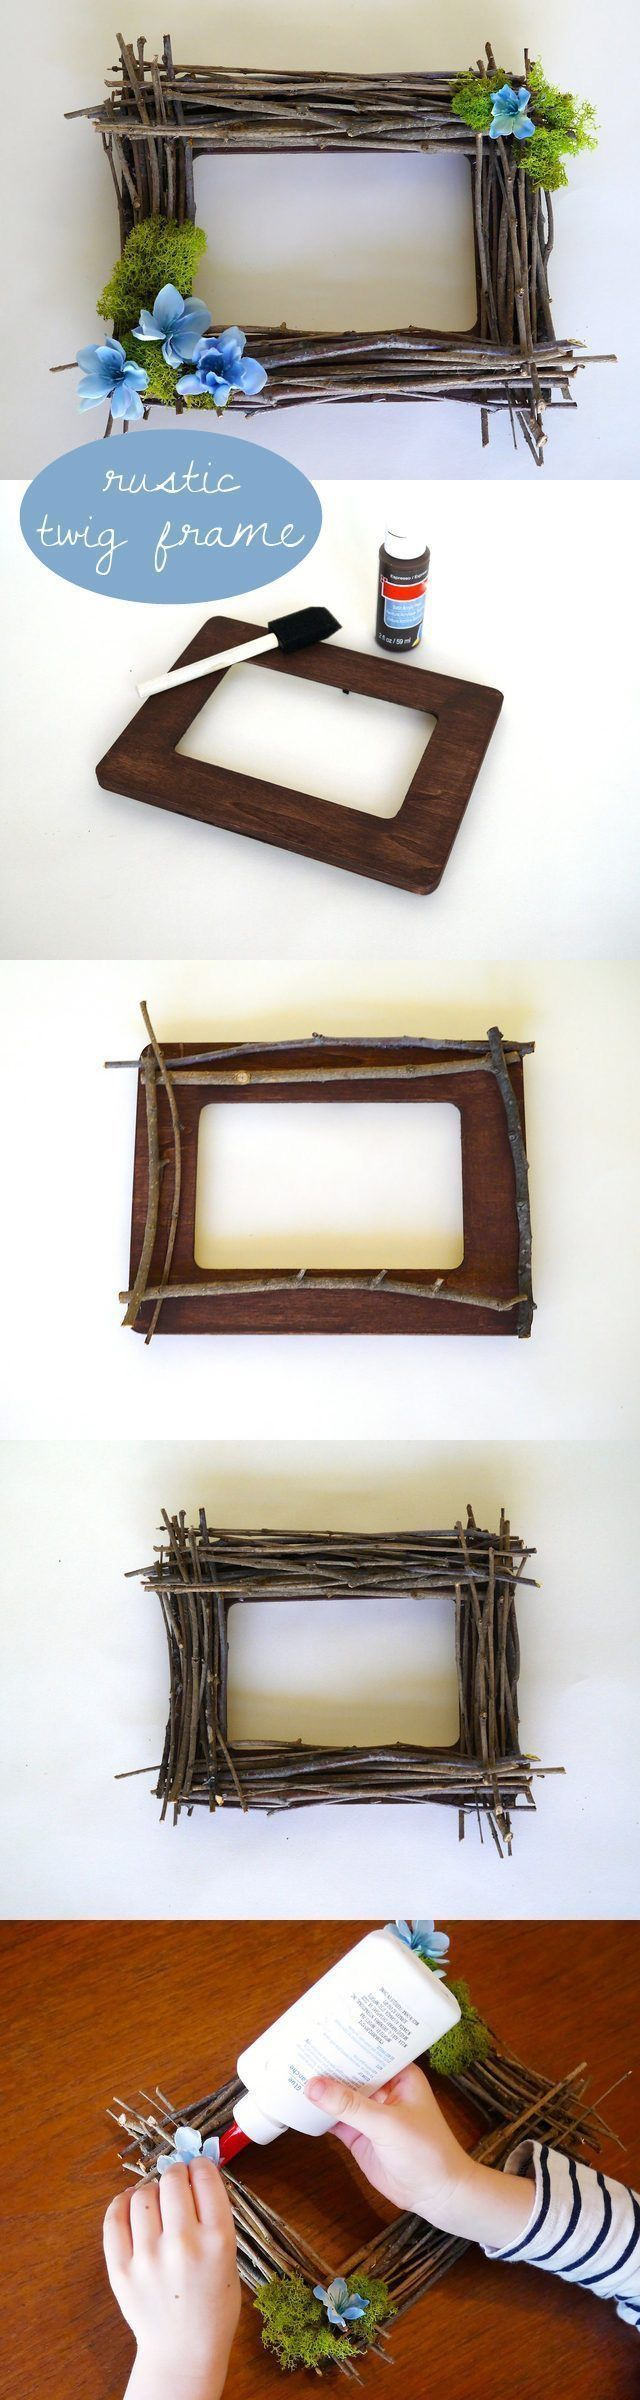 DIY twig frame  Follow us for more. Her Box is a monthly subscription box catered to women during your periods. Discover products that will relieve stress and discomfort. Treat Yourself. Check out www.theHerBox.com for a 3 month subscription box.   ------------------------------------------------------------------- #skincare #beautytips #lifehacks #bathbomb #tampons #empower #basic #deals #cute #feminine #woman #fashion #nails #love #dessert #cooking #empowerment #monthly #period #cycle…